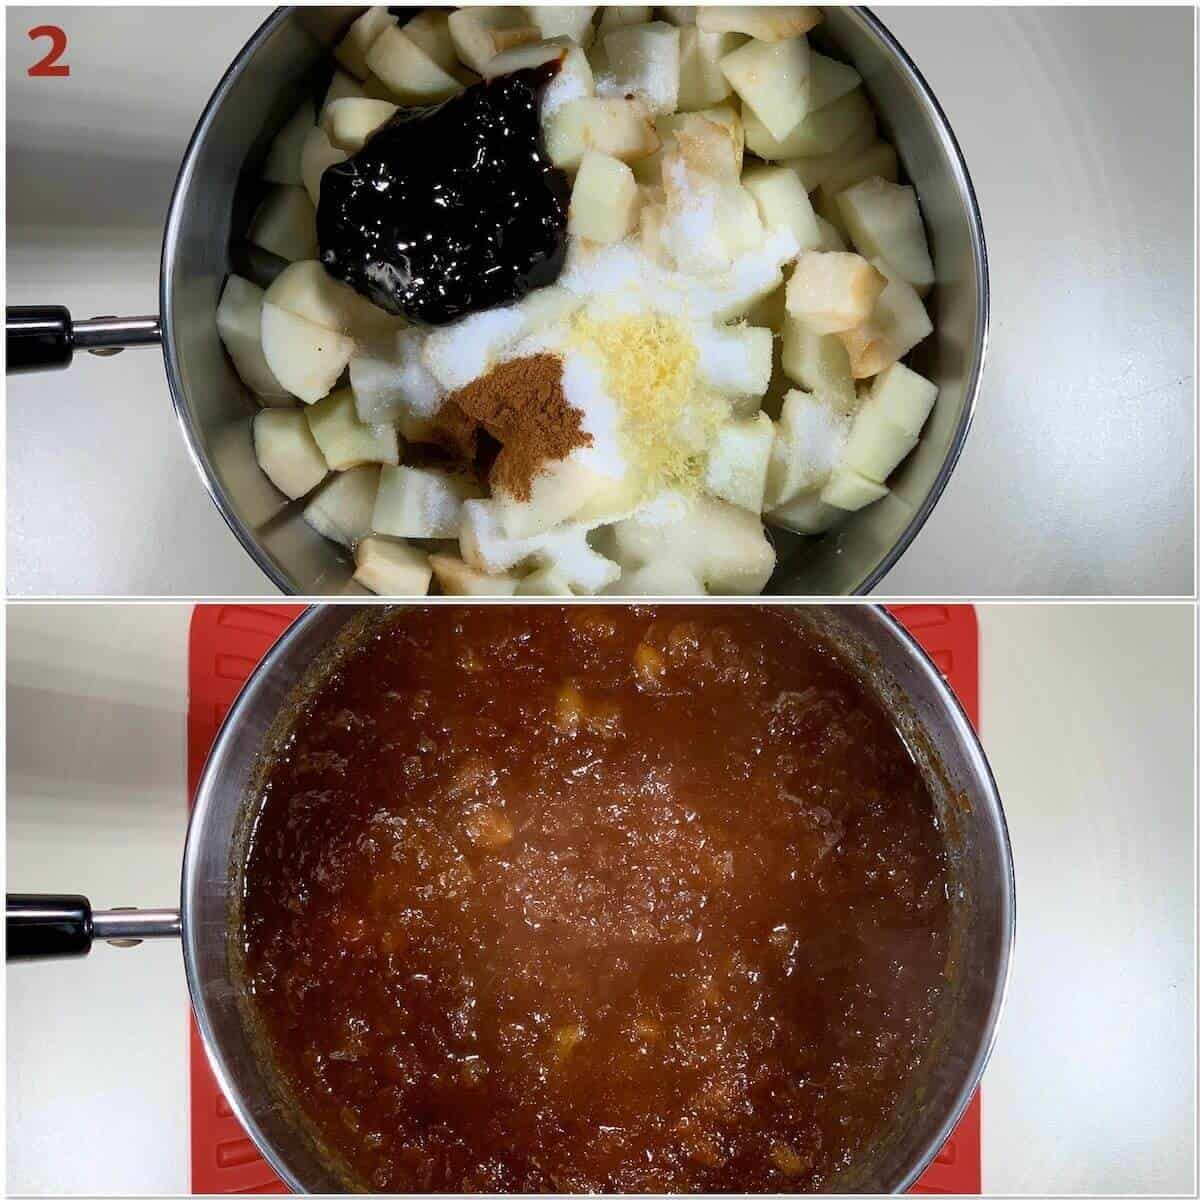 Collage of making applesauce in a saucepan.